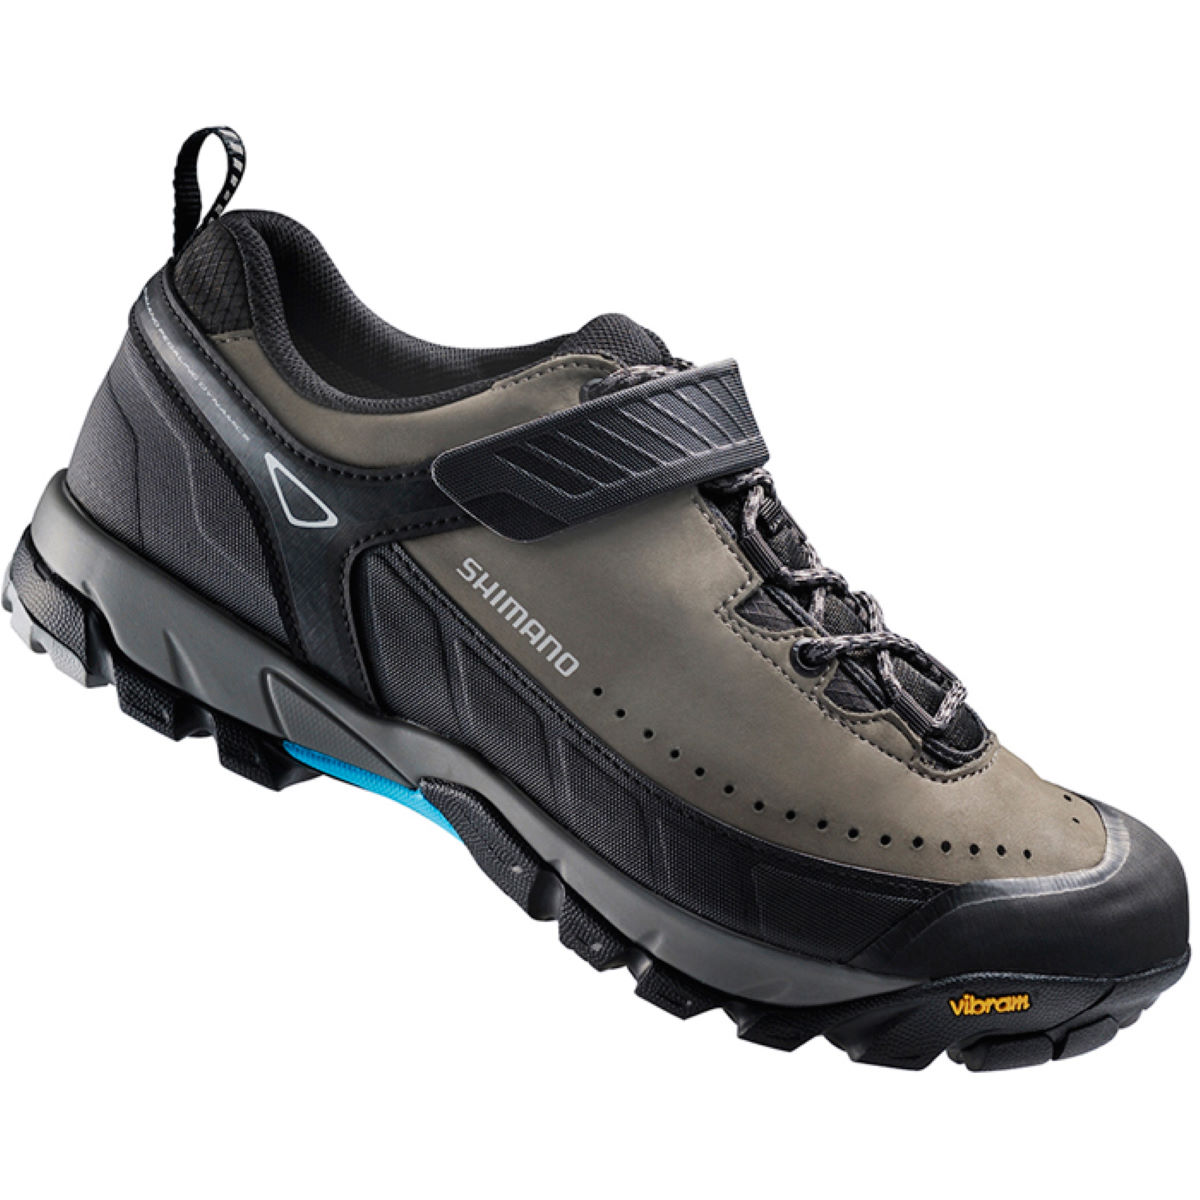 Chaussures Shimano XM7 SPD - 44 Gris Chaussures VTT